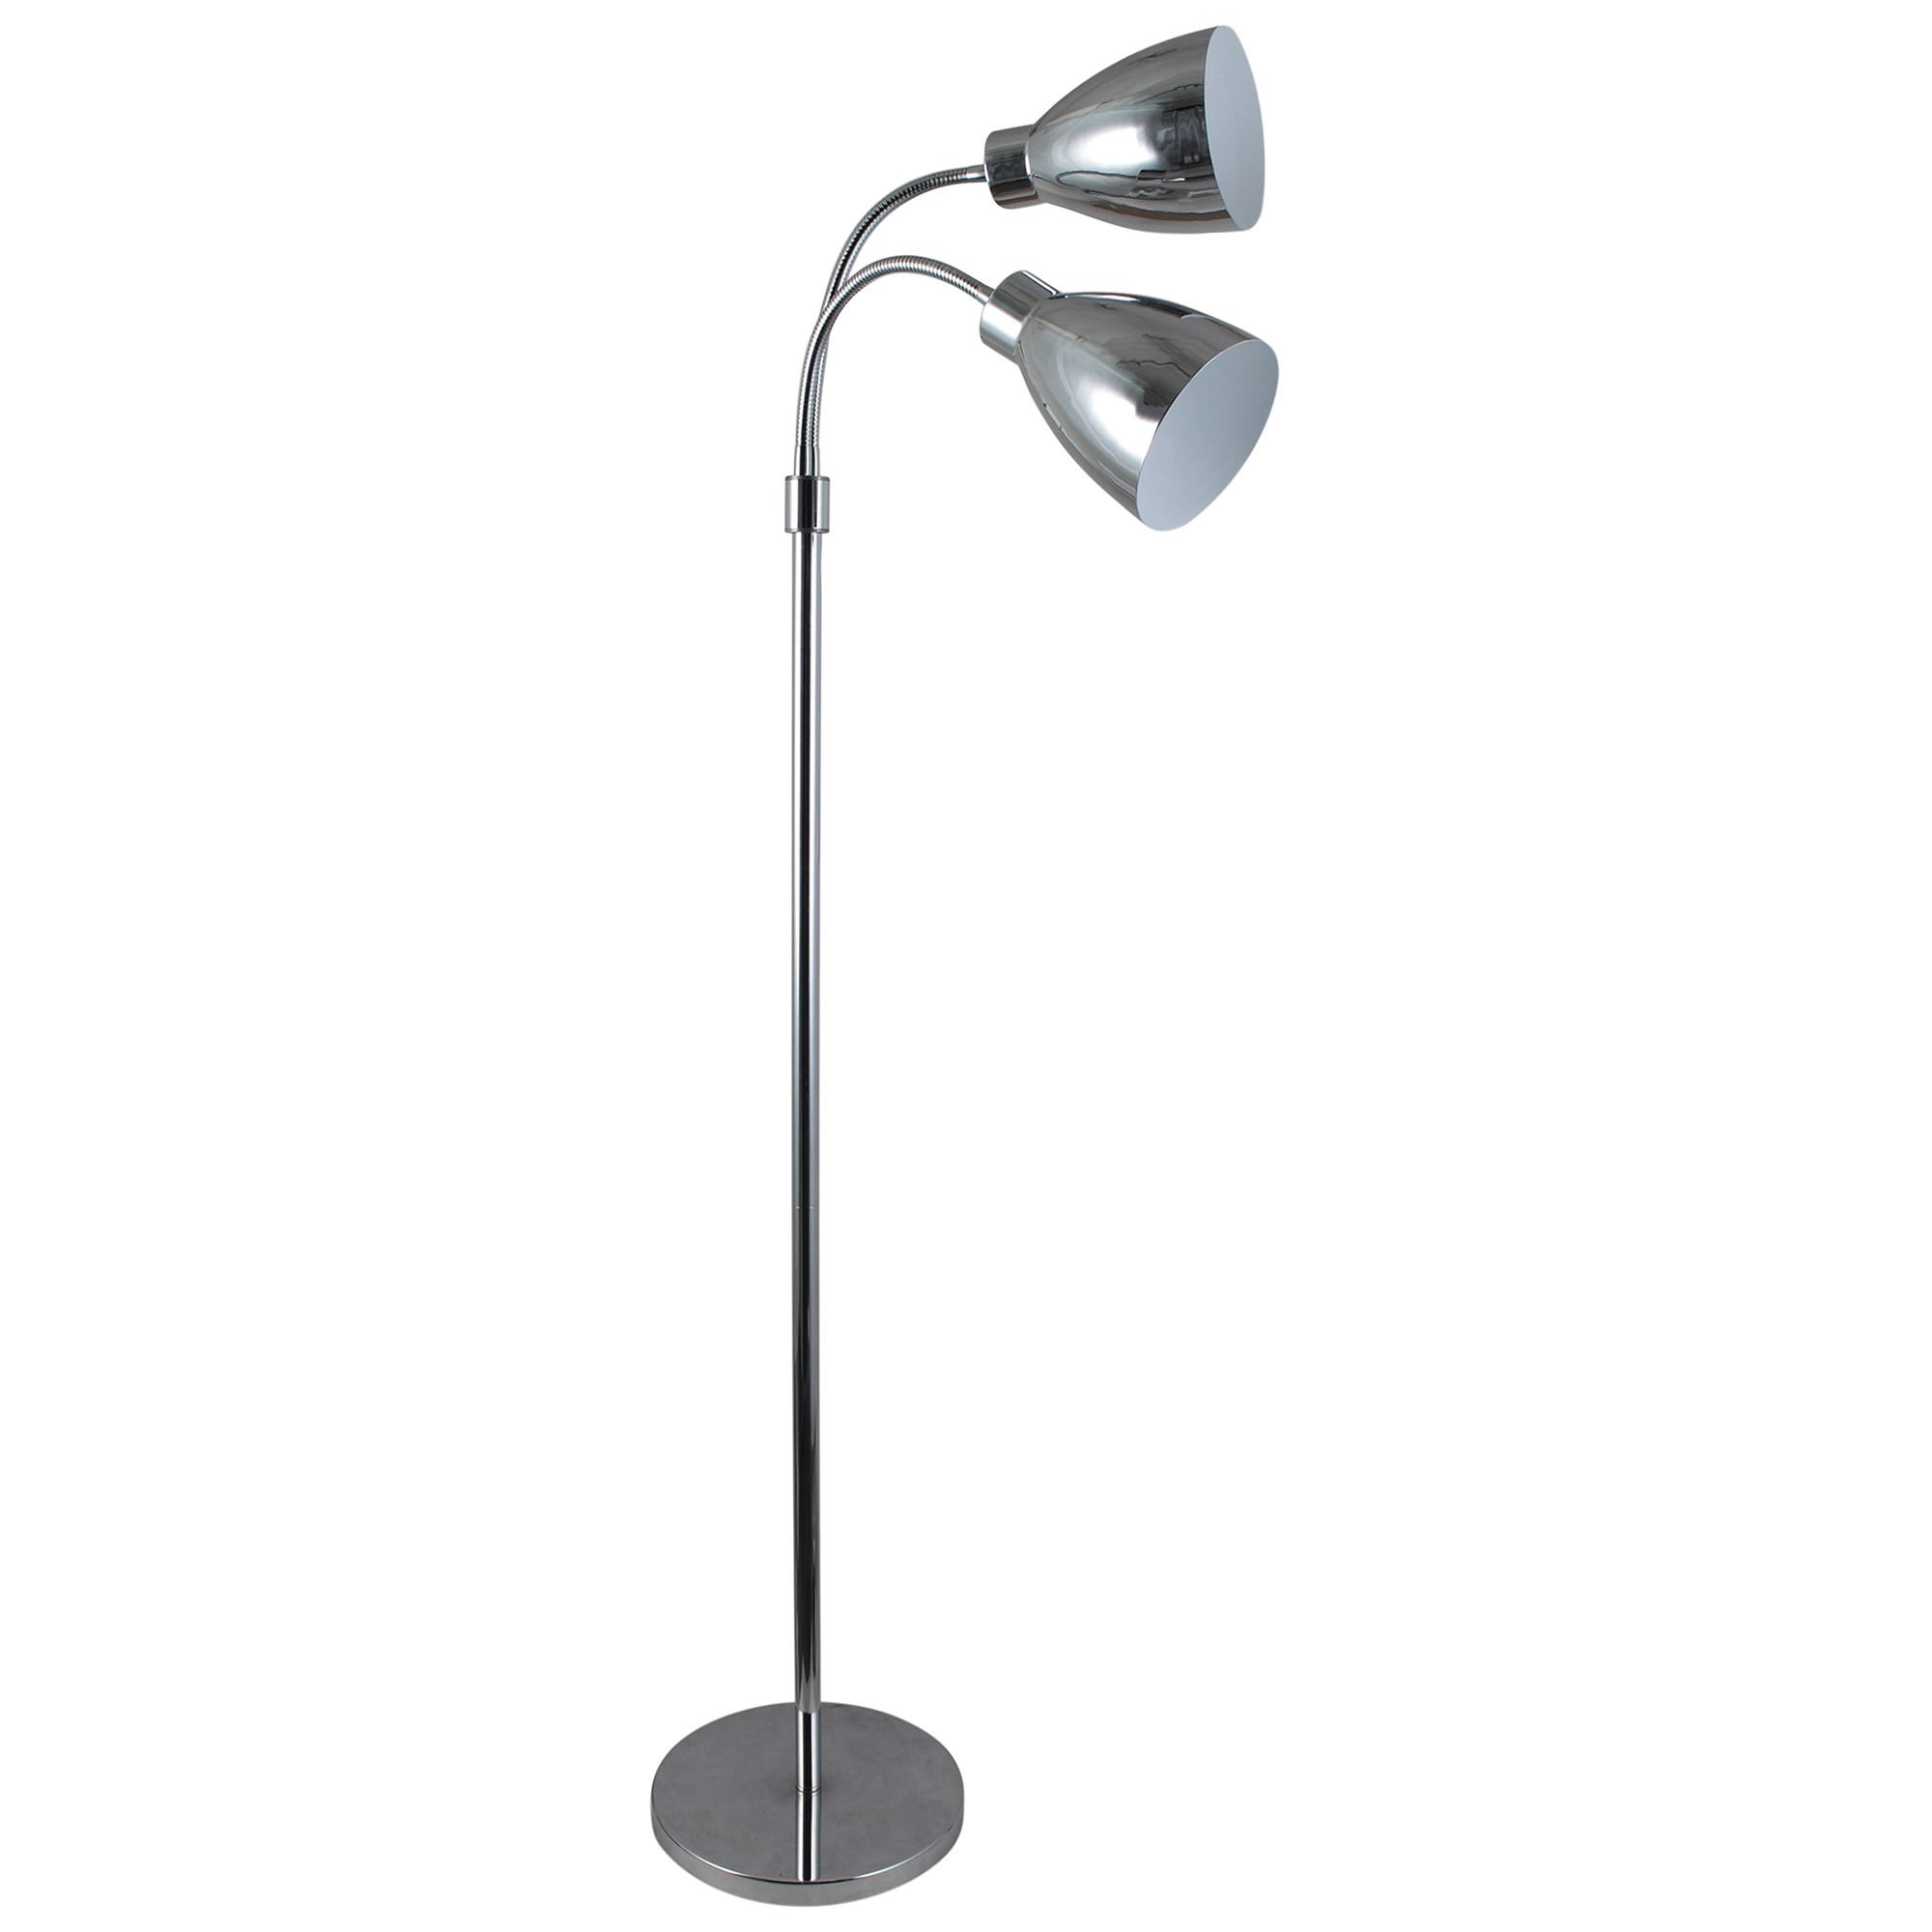 Retro Twin Flexible Neck Metal Floor Lamp, Chrome